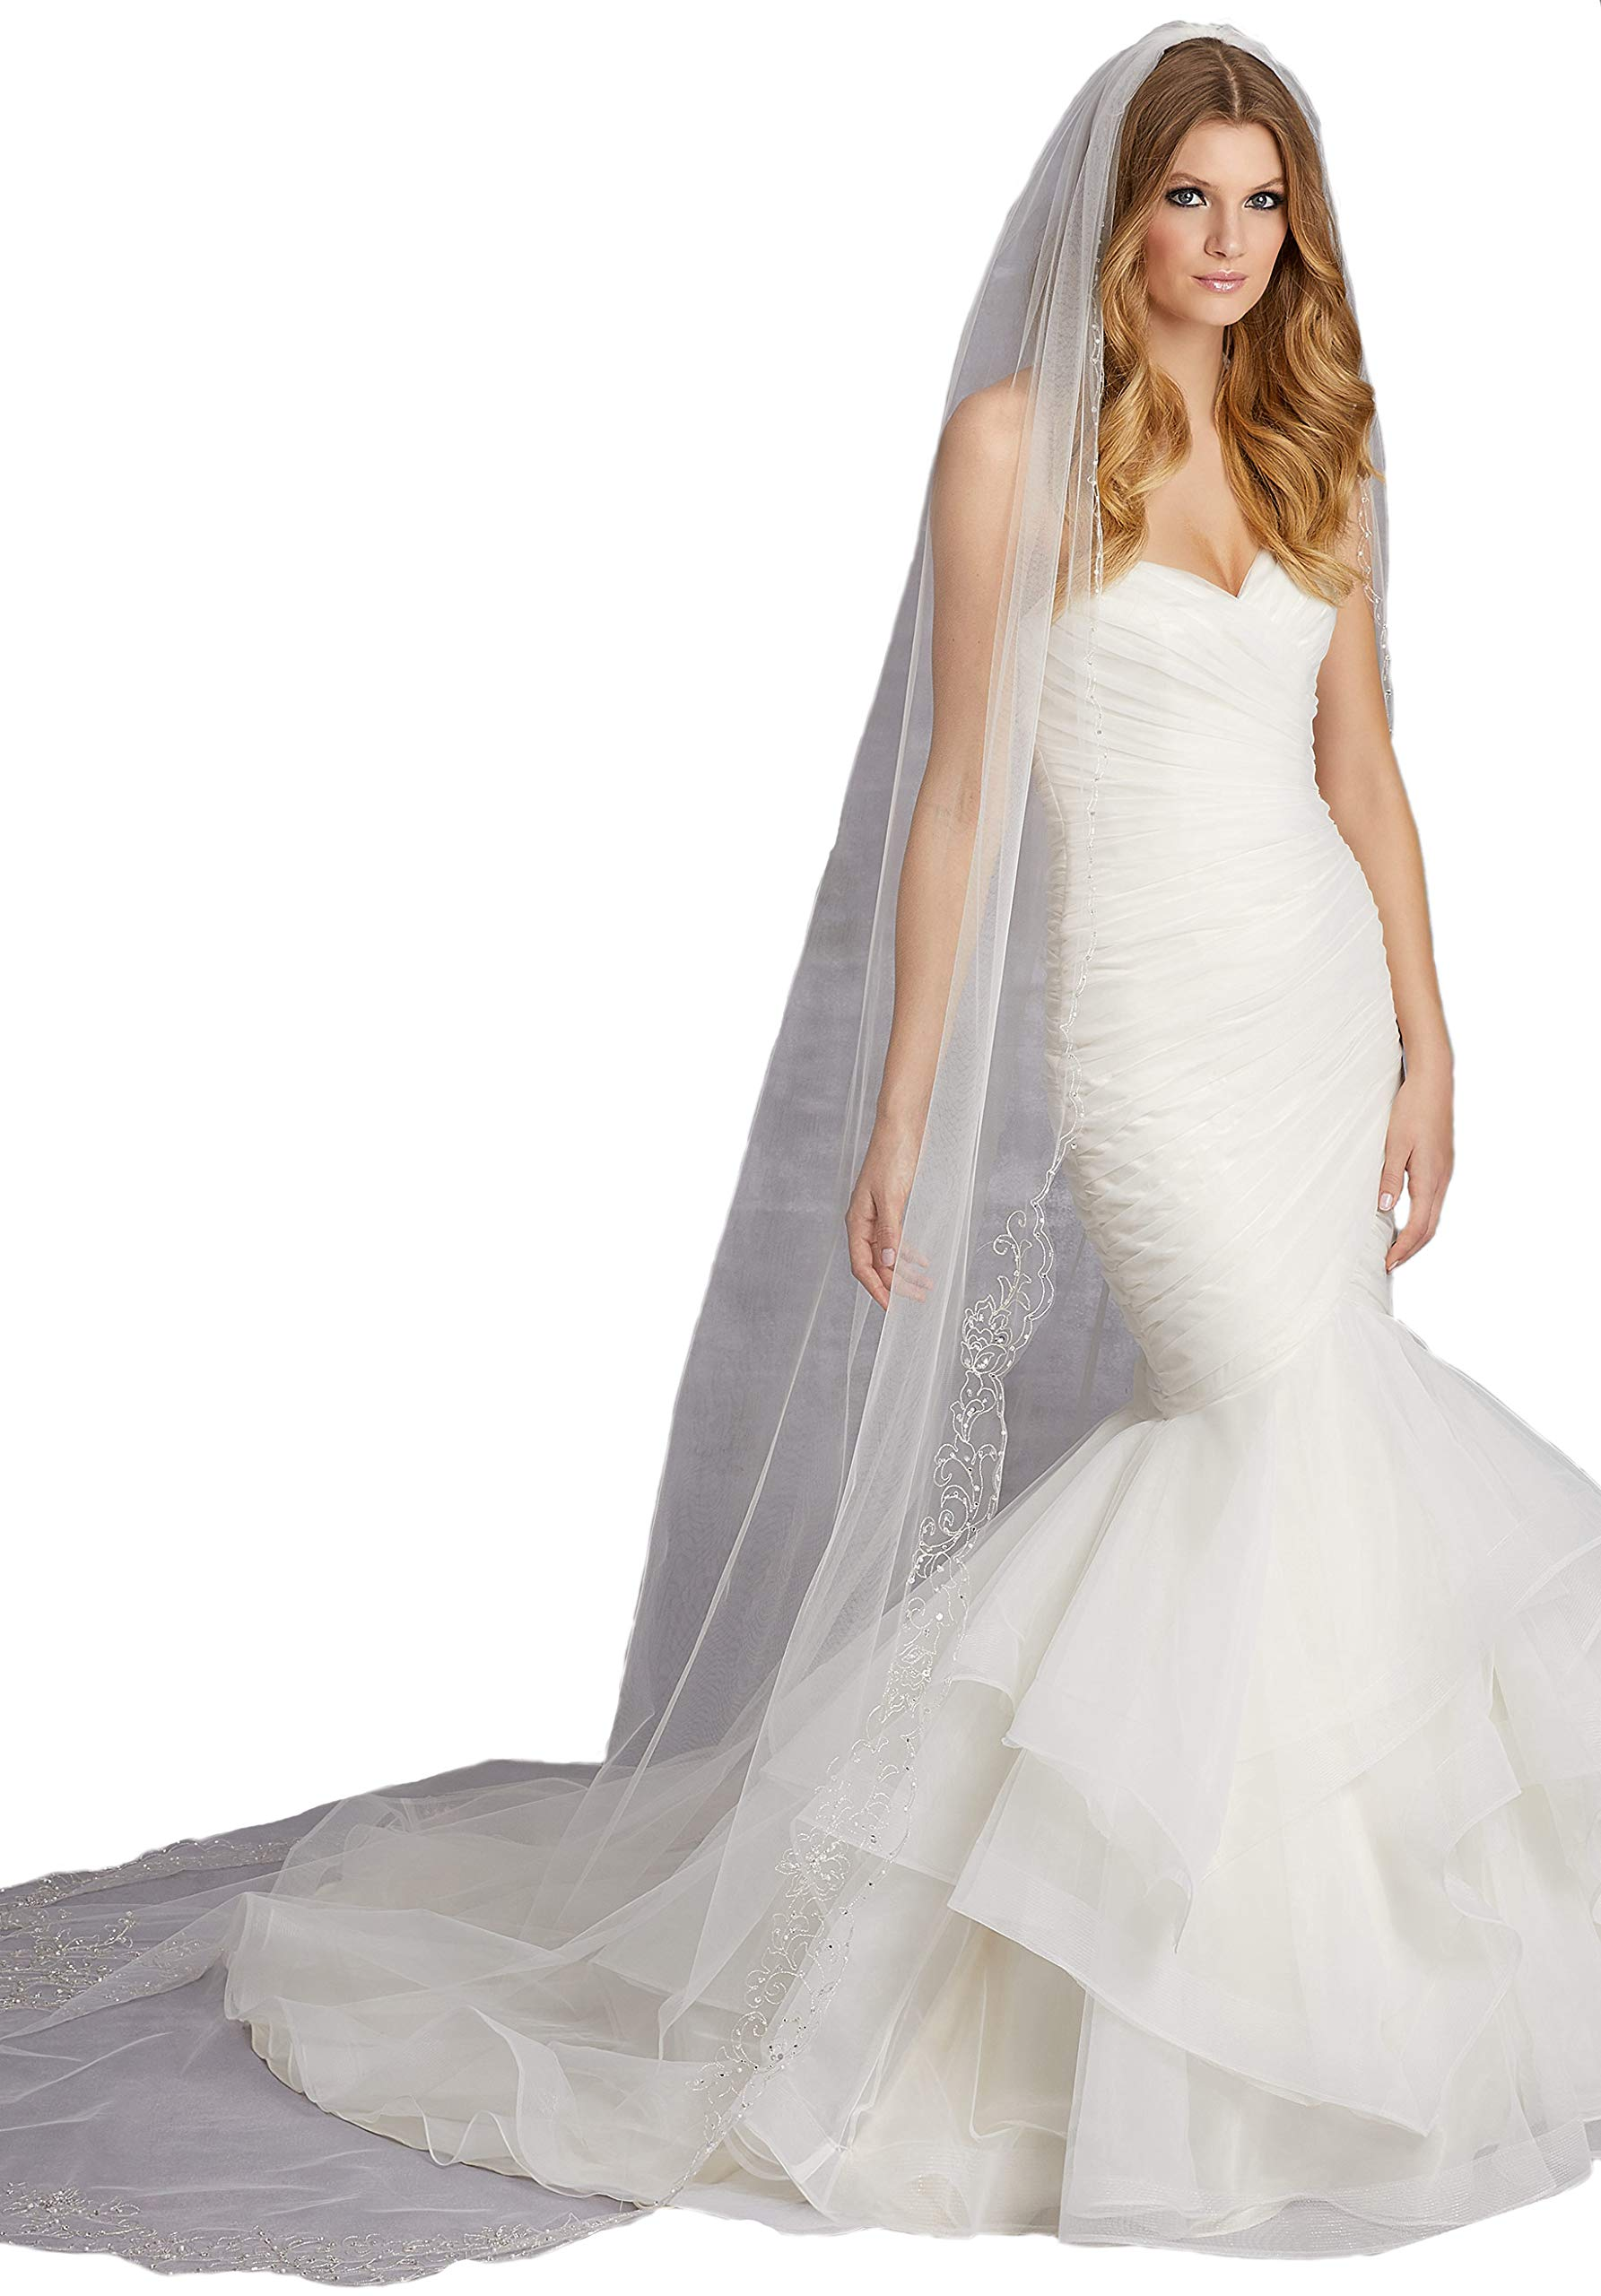 Passat Ivory Single-Tier 3M Cathedral Veil with Heavily Beaded EmbroiderySequins Beads and Rhinestones VL-1029